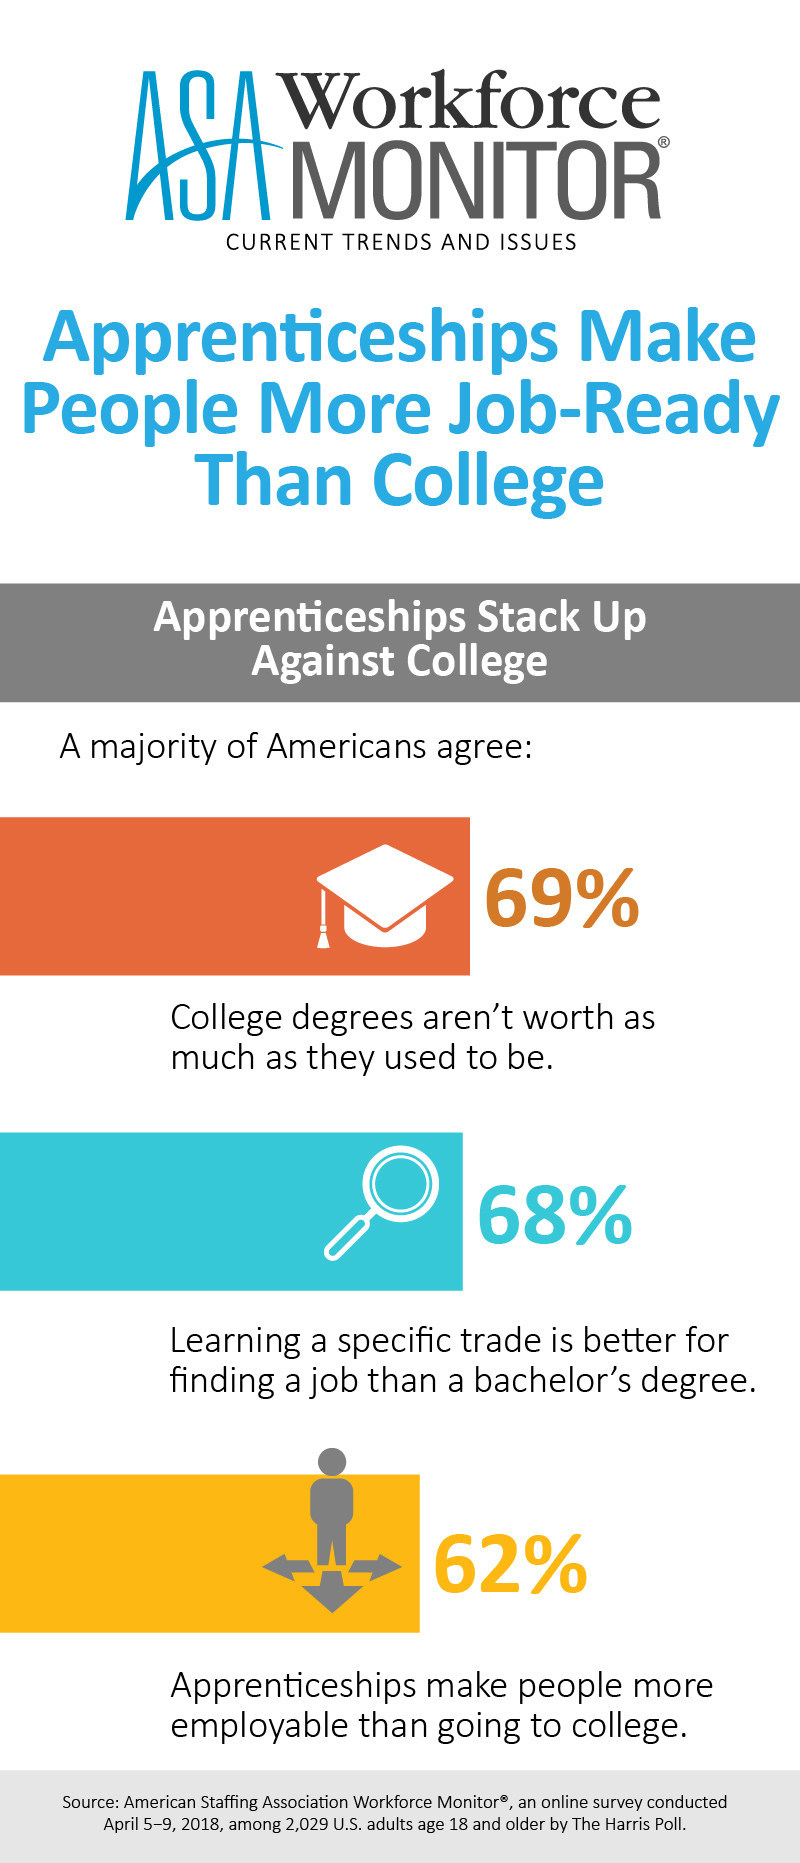 Apprenticeships stack up against college, according to the latest ASA Workforce Monitor.